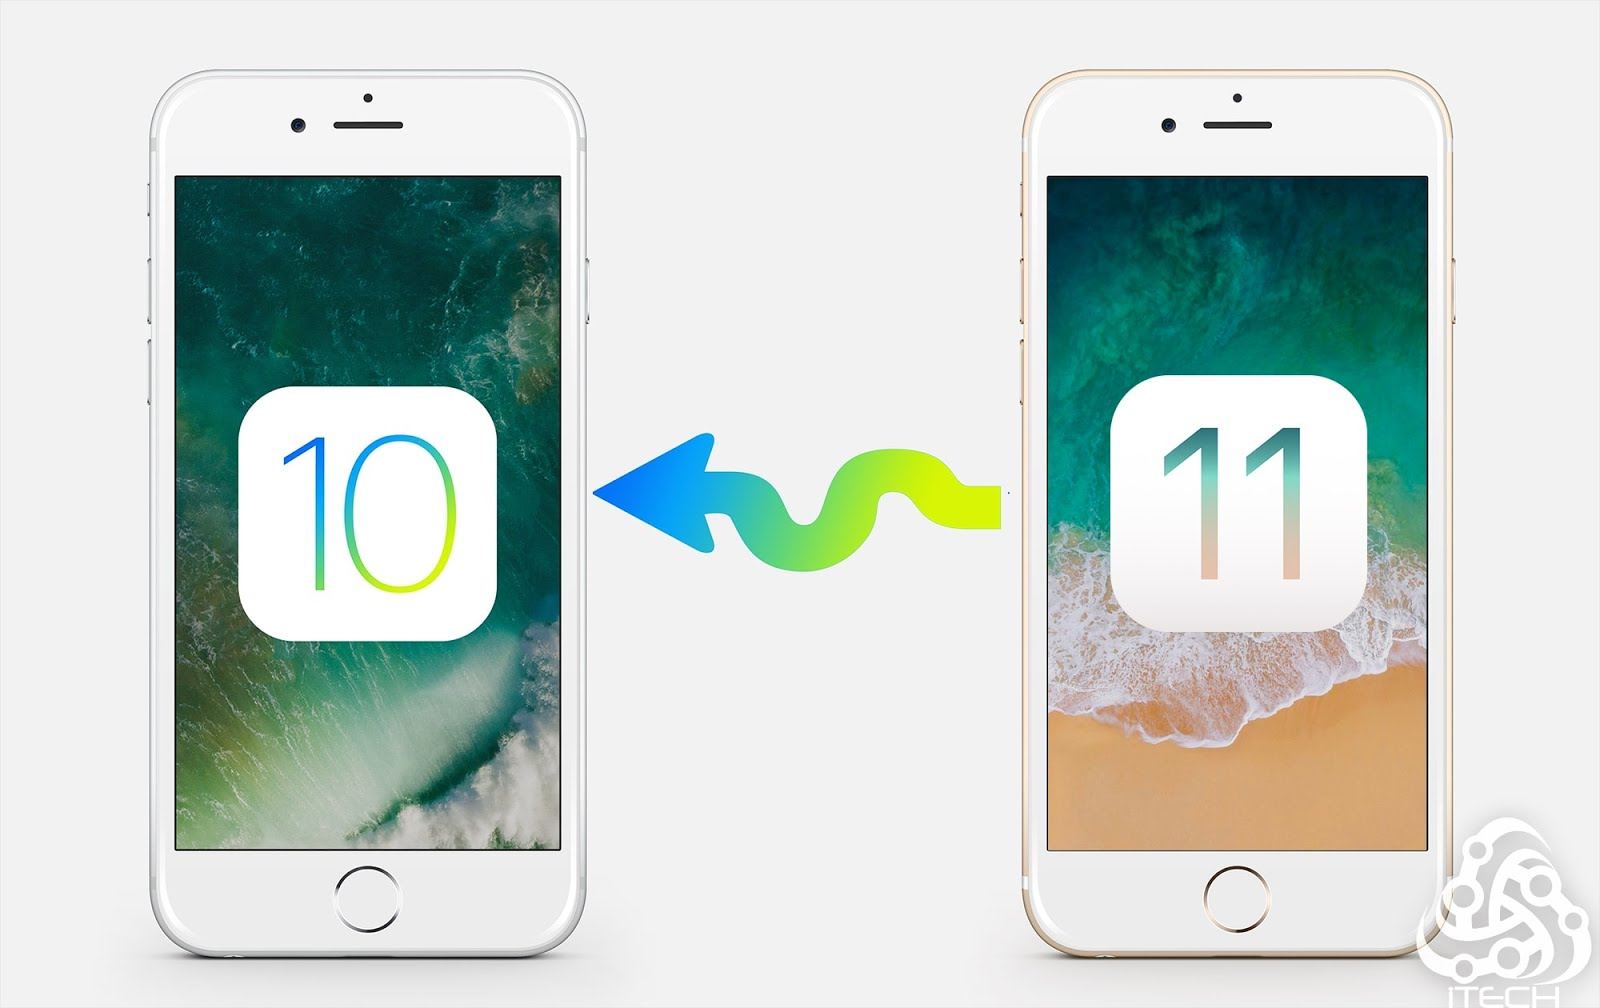 how to downgrade from iPhone or iPad from iOS 11 to iOS 10 without restore